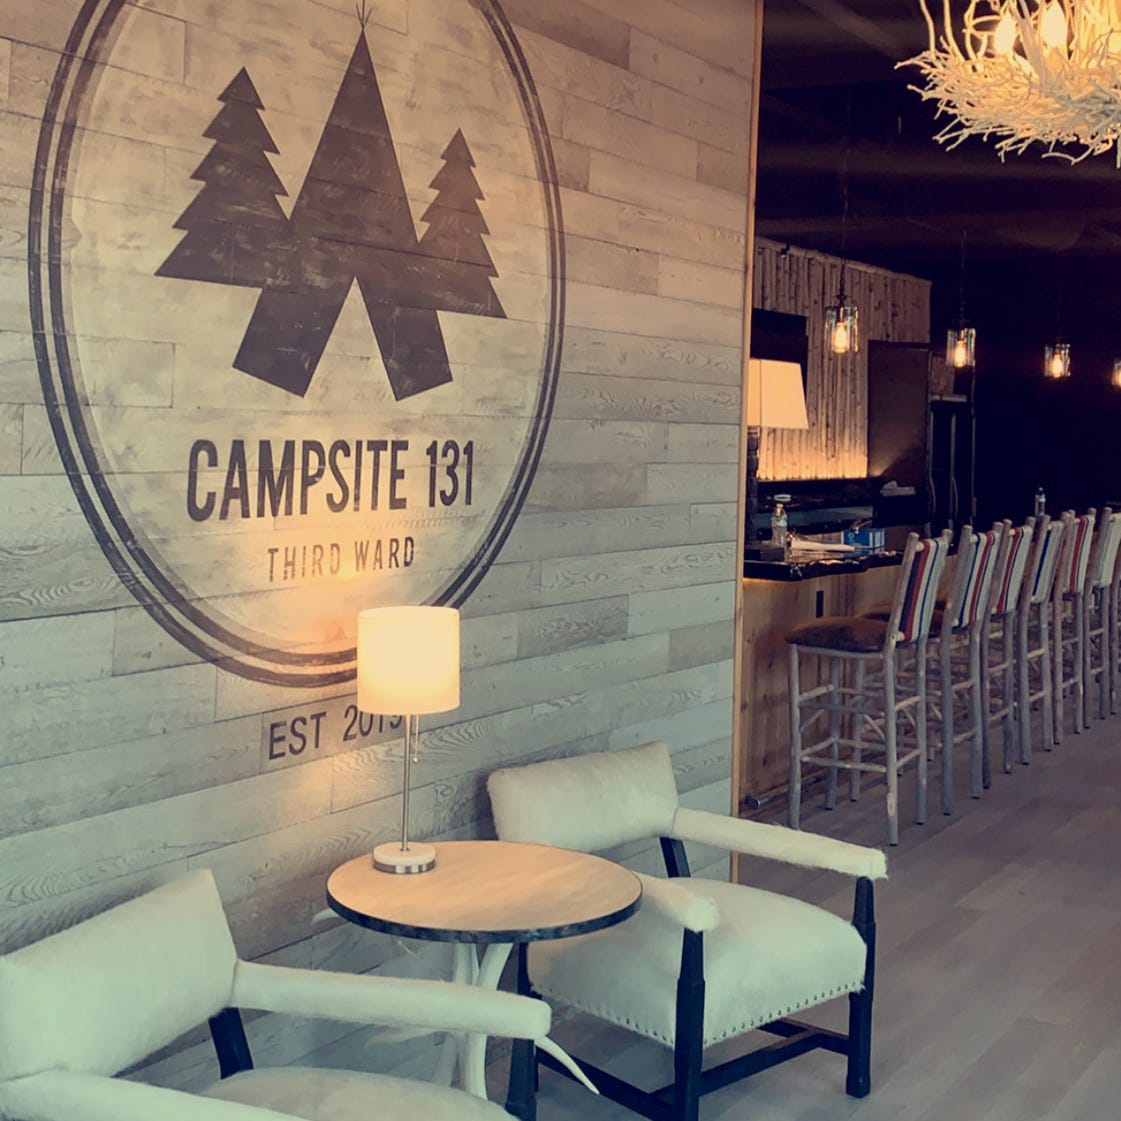 Campsite 131, a new bar from the owner of Camp Bar, opens March 1 in Milwaukee's Third Ward